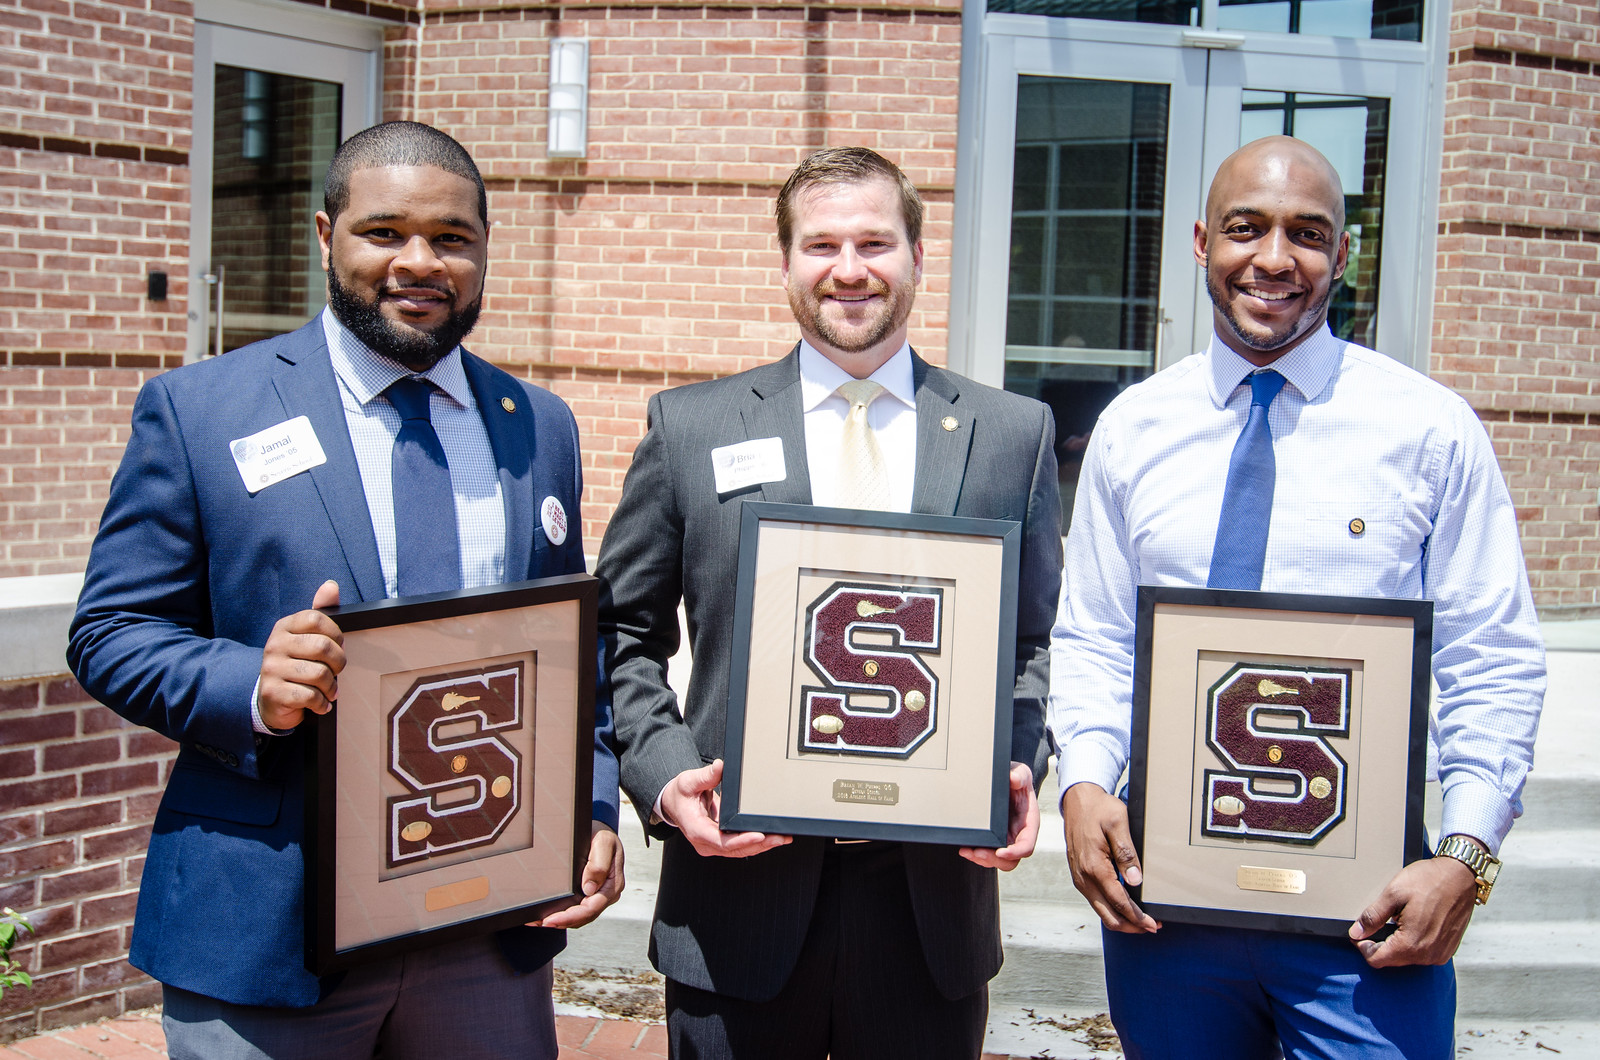 17-18 Alumni Weekend: Athletic Hall of Fame Assembly and Luncheon